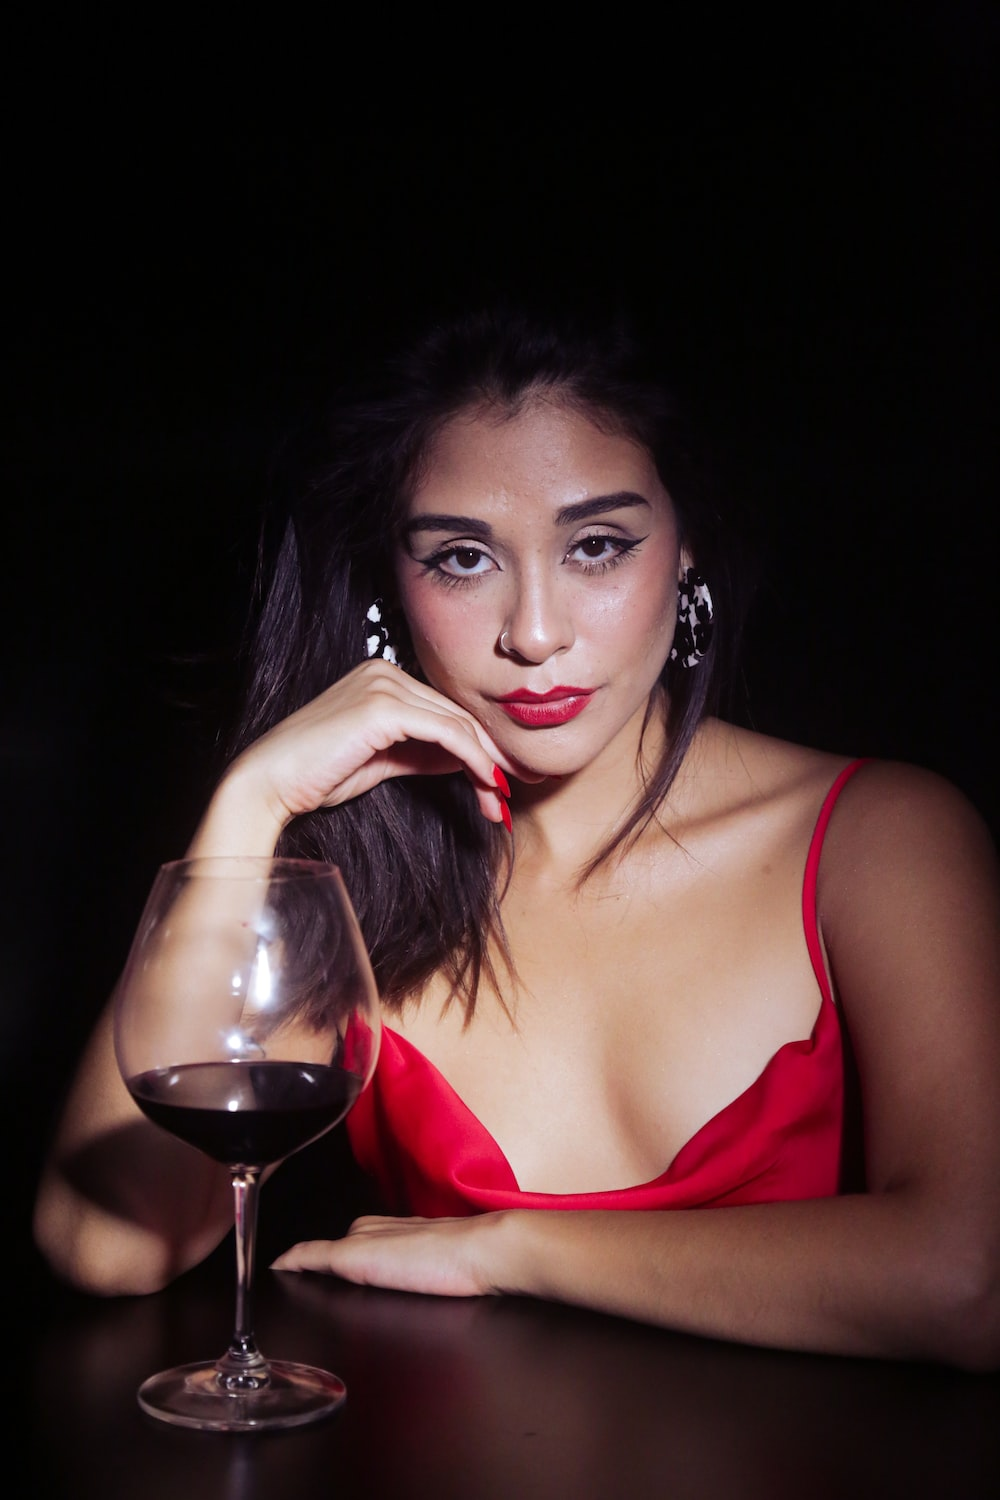 woman in red spaghetti strap top holding wine glass